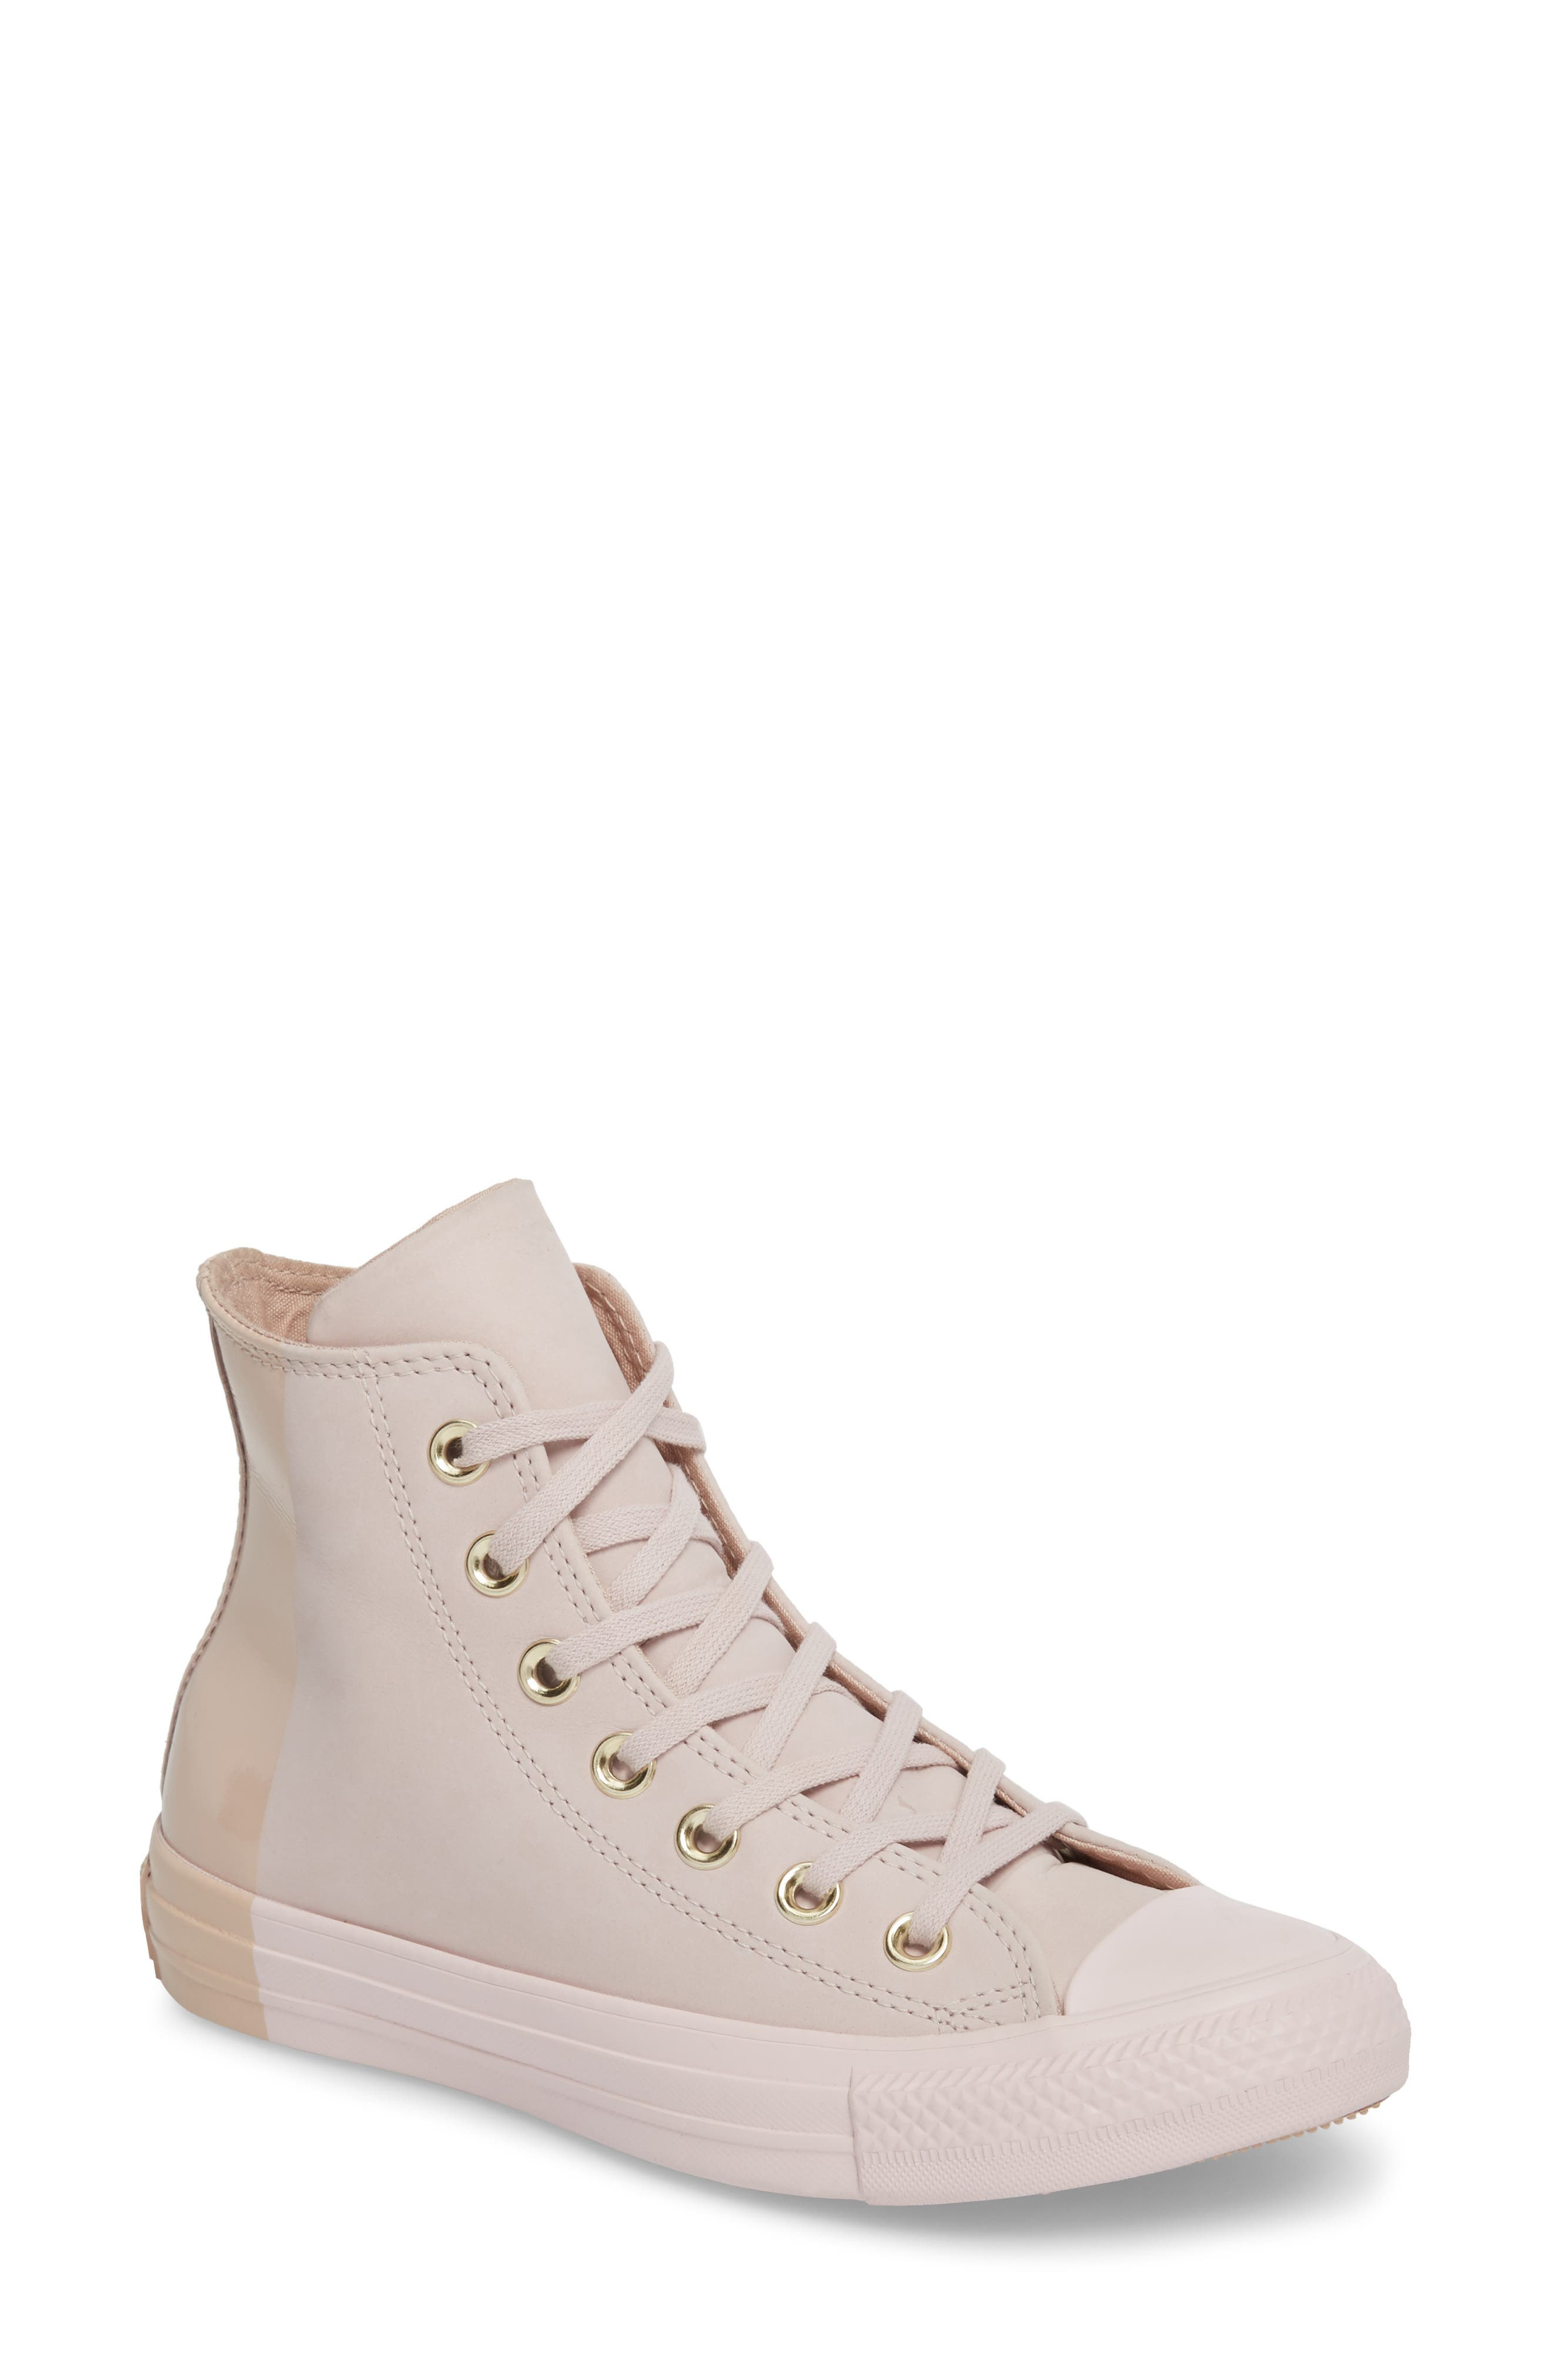 Chuck Taylor<sup>®</sup> All Star<sup>®</sup> Blocked High Top Sneaker,                         Main,                         color, Barely Rose